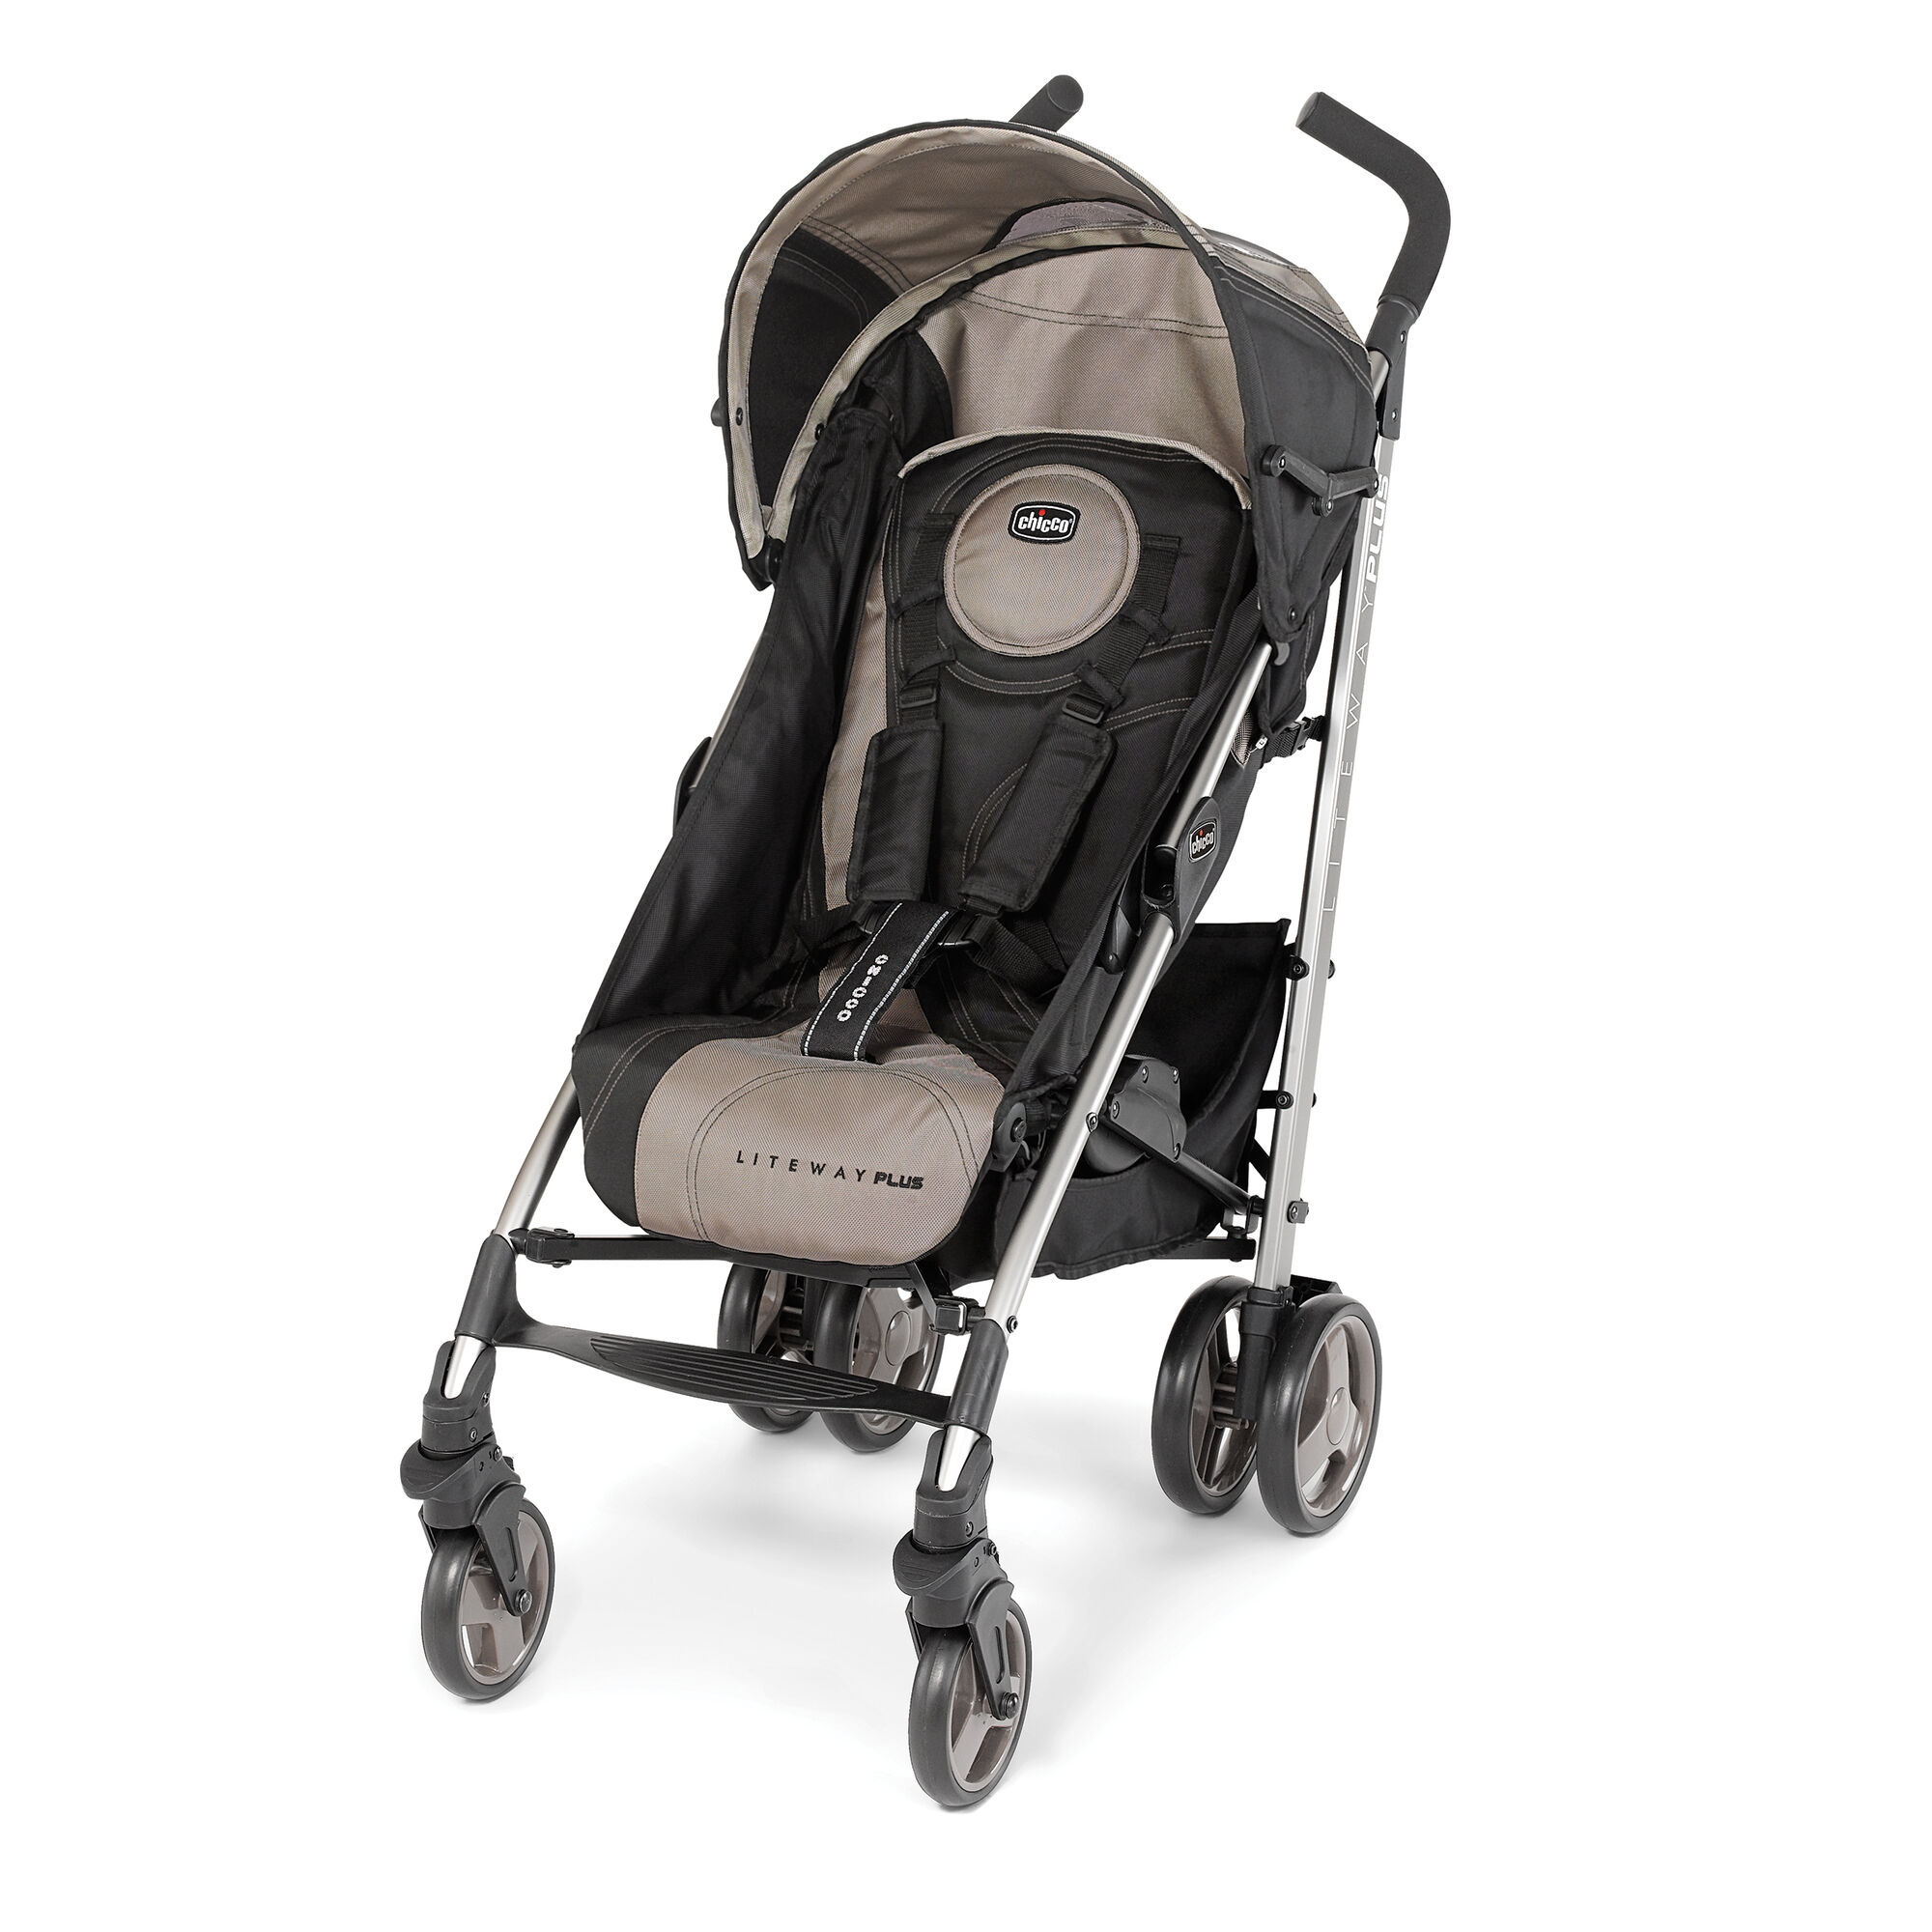 Chicco Liteway Plus 2 In 1 Stroller Champagne